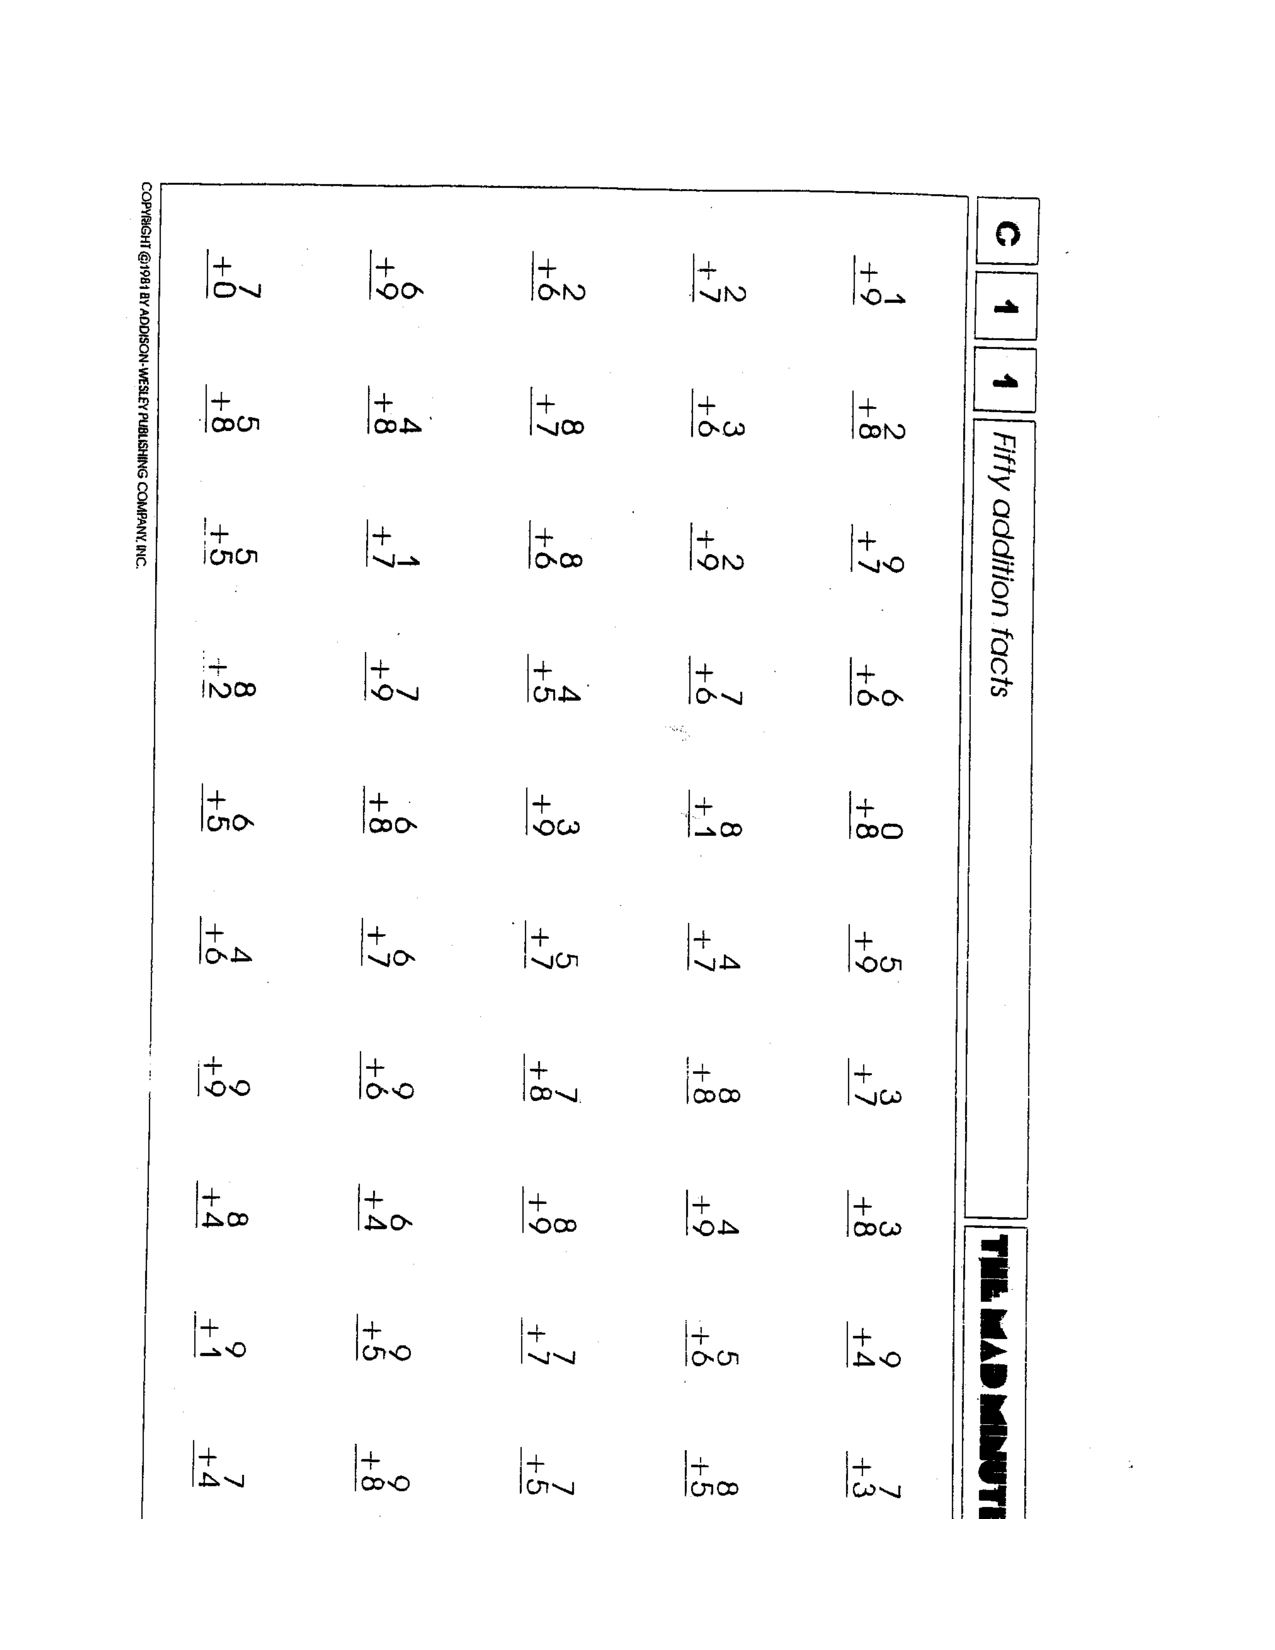 Worksheet Math Worksheets To Print For 4th Grade math worksheets printable 4th grade k5 learning 5 best images of fourth 4th